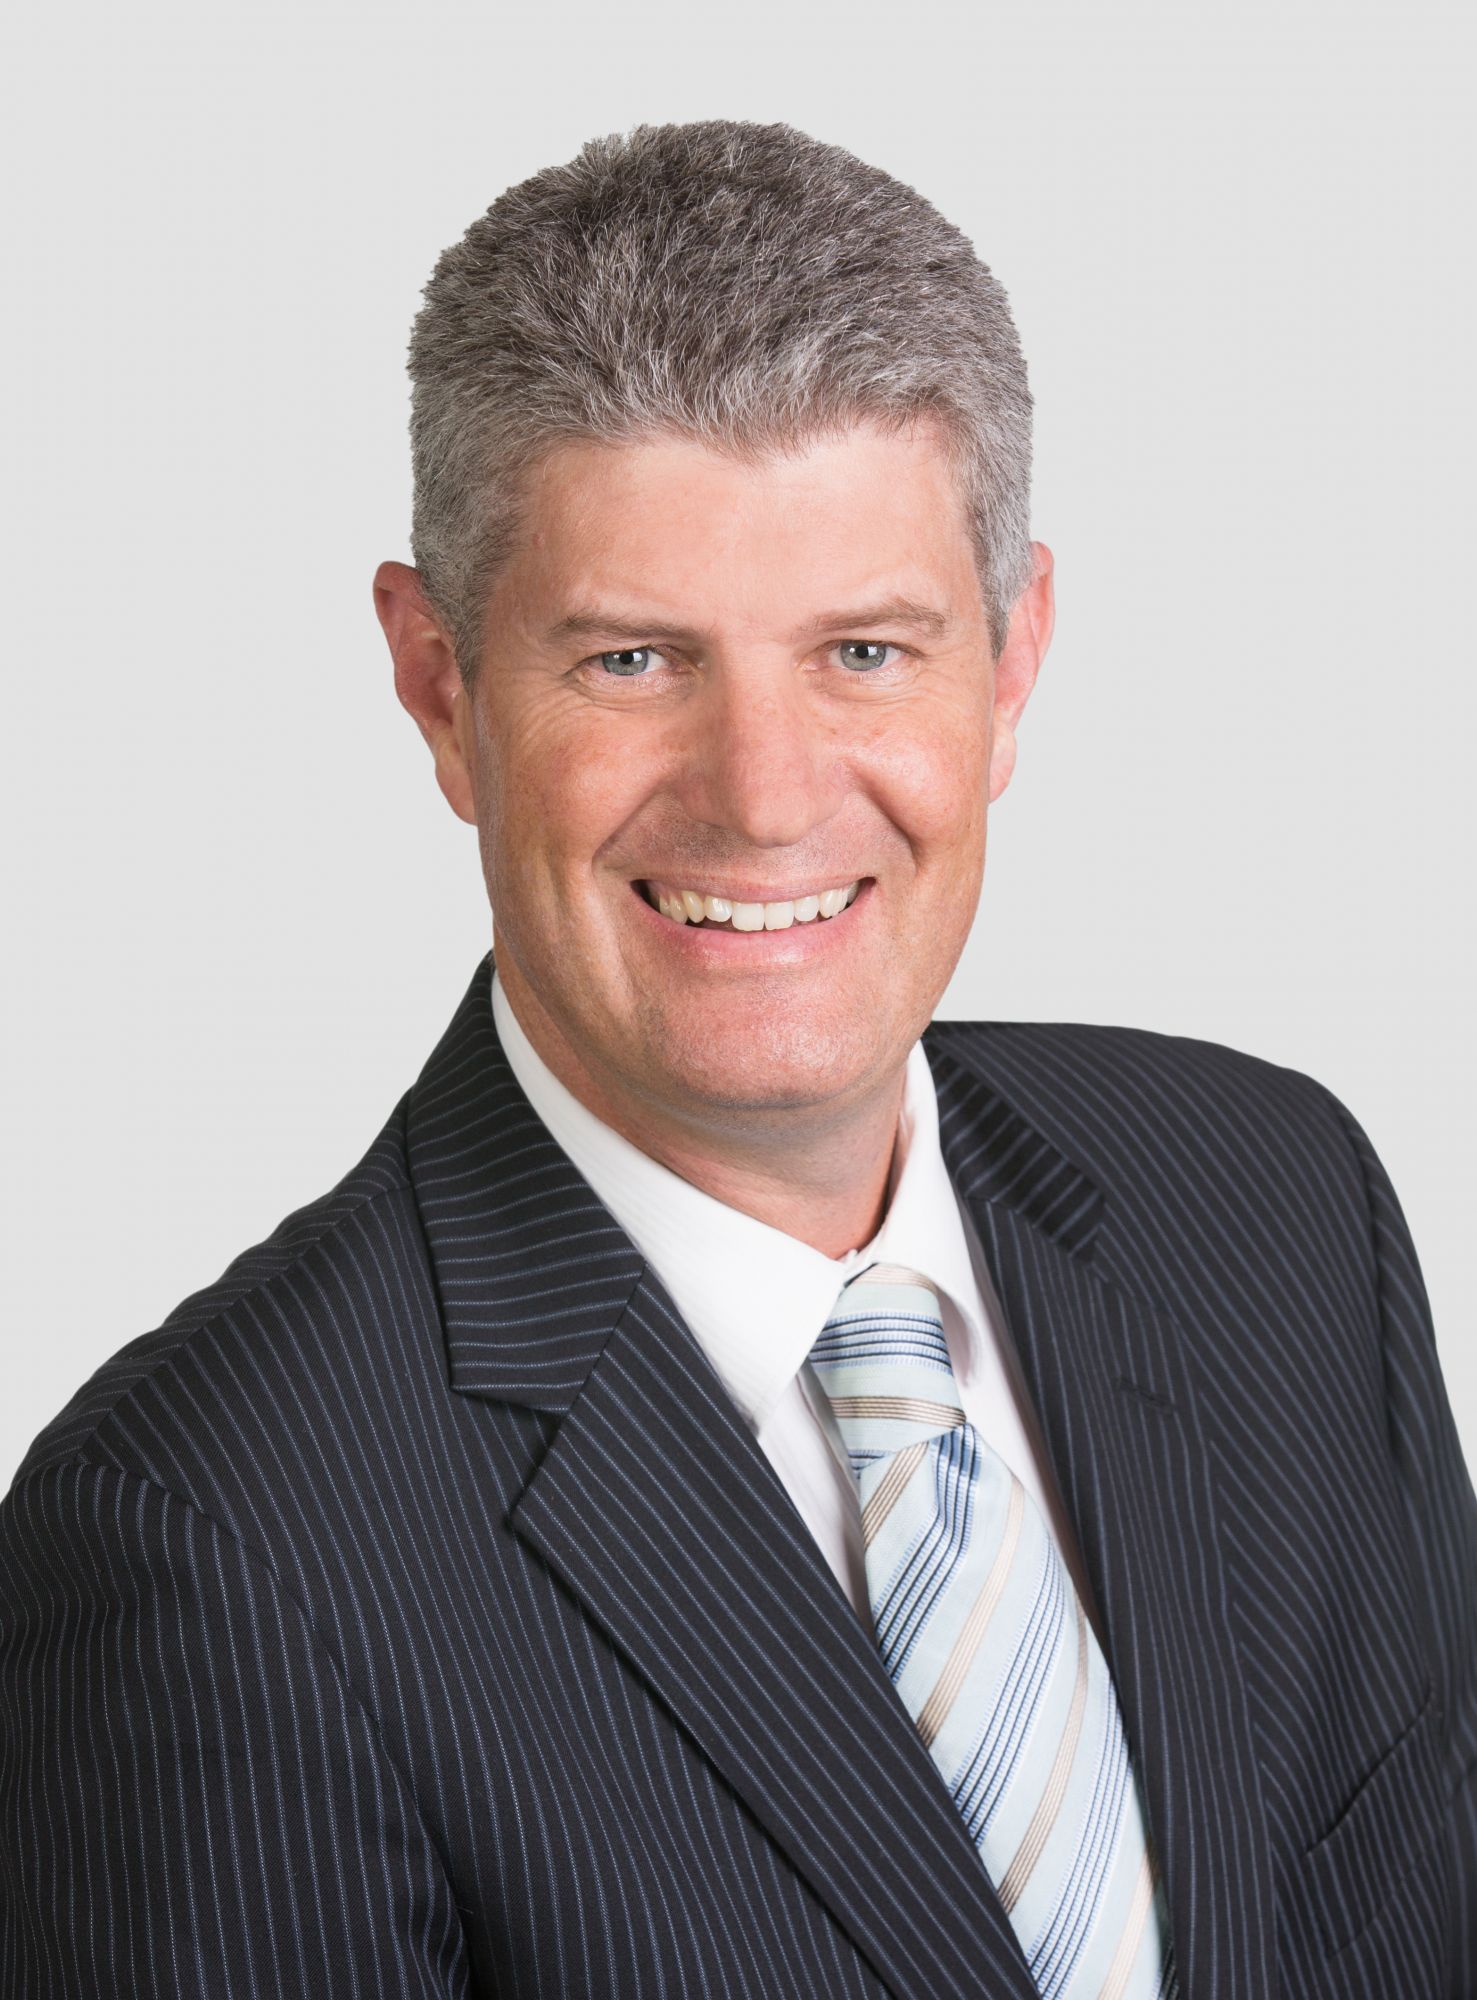 Image of The Hon. Stirling Hinchliffe MP